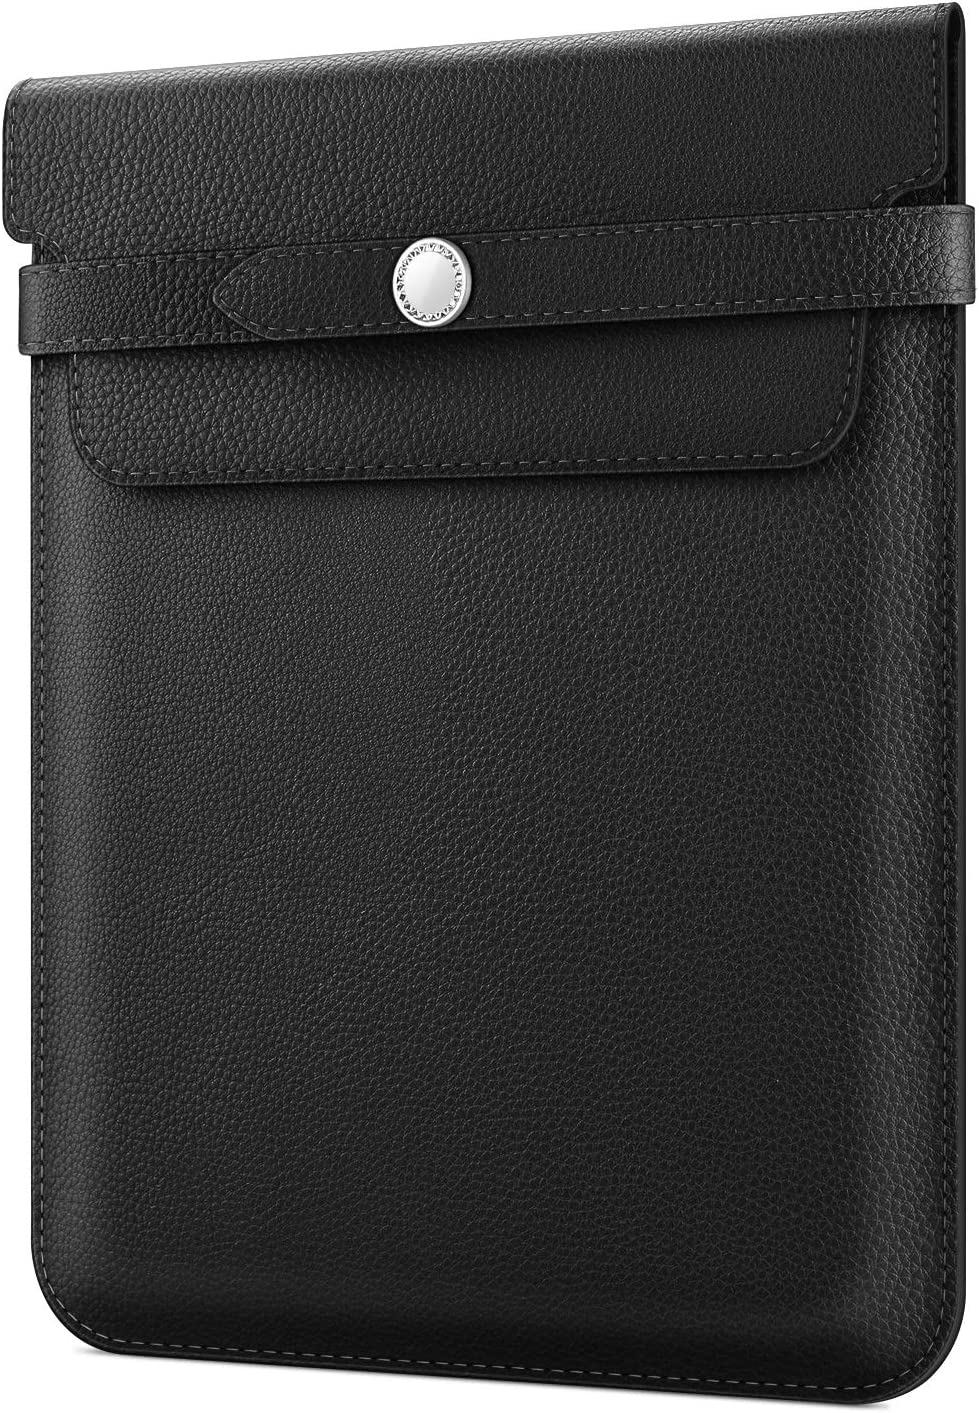 Fintie 9-11 Inch Tablet Sleeve with Stylus Holder, Protective Cover Case Compatible with iPad Pro 11 2020/2018, iPad 10.2, iPad Air 3rd/Pro 10.5, iPad 6th/5th Gen, Samsung Tab A 10.5/S4 10.5, Black